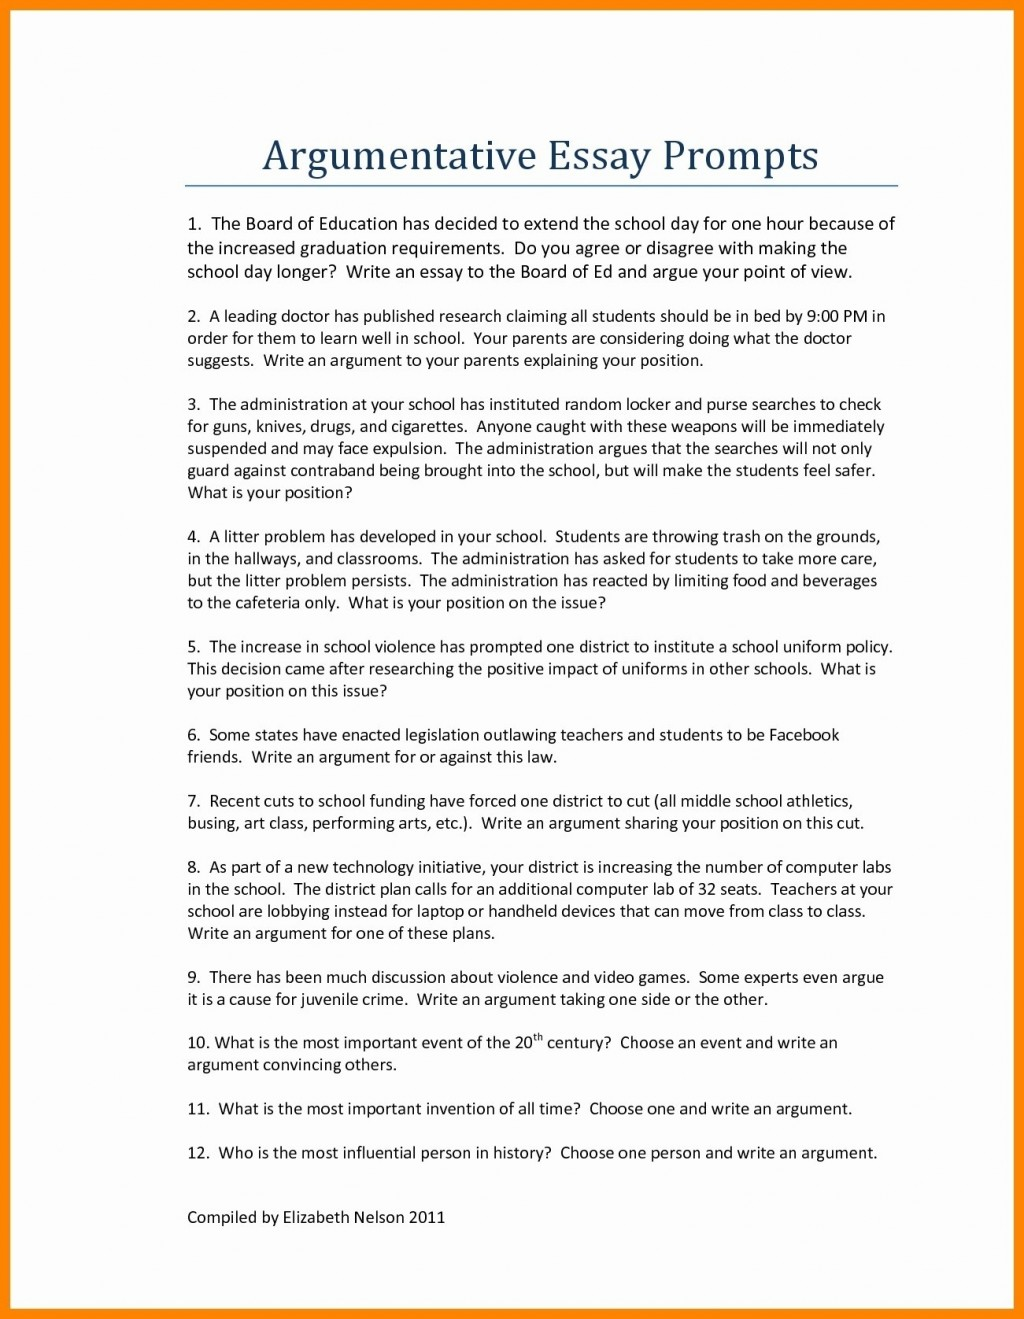 013 Personal Narrative Essay Examples Middle School Example Of Creativeve About Love Printables Corner W On Abortion For High Pdf Education College Debate Free Unbelievable Argumentative Topics Large